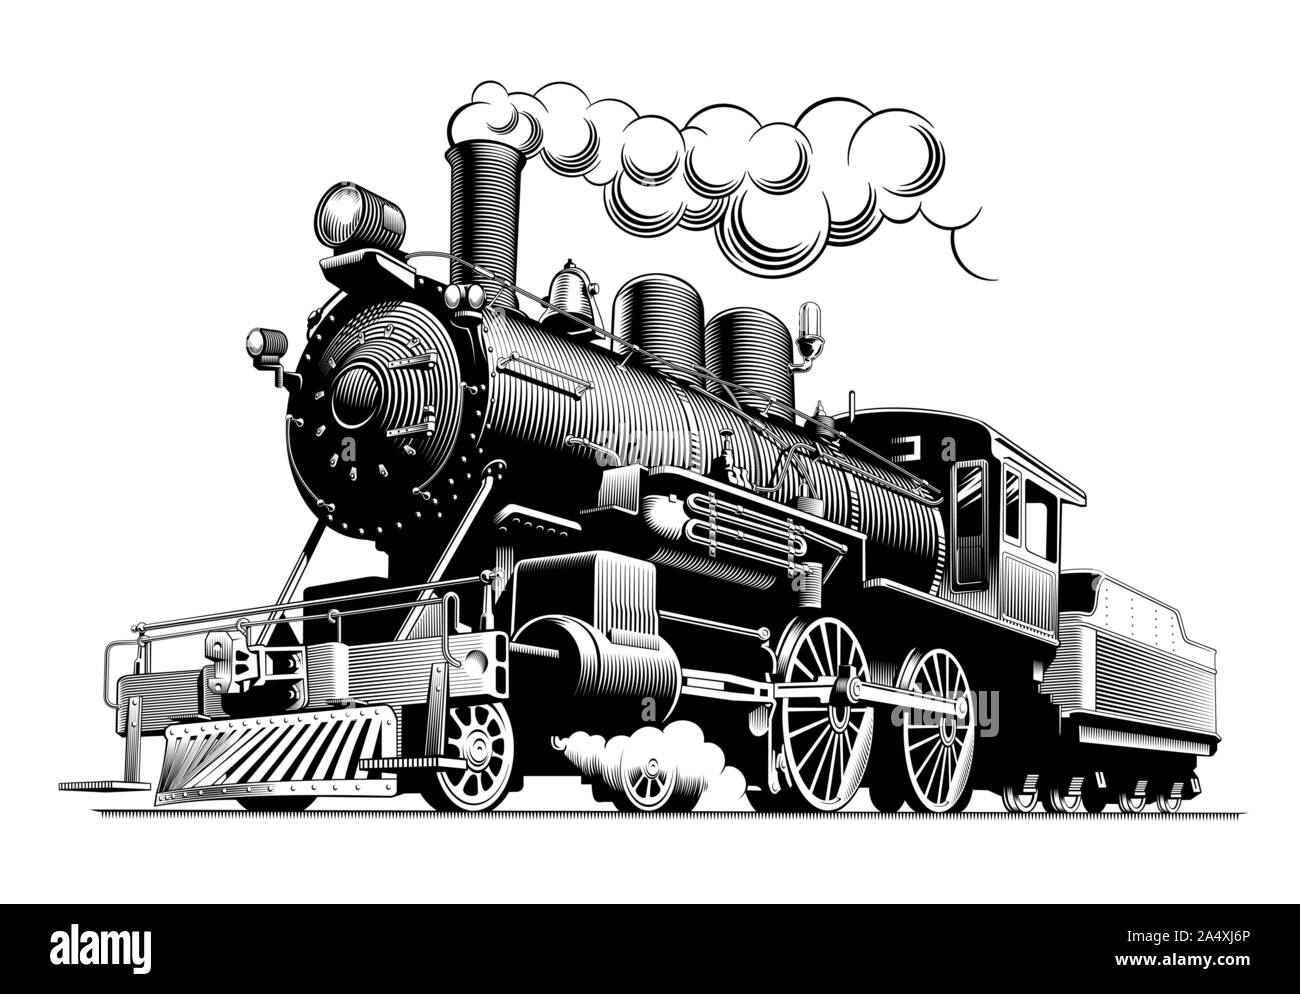 Vintage Steam Train Locomotive Engraving Style Vector Illustration On Brown Background Logo Design Template Stock Vector Image Art Alamy